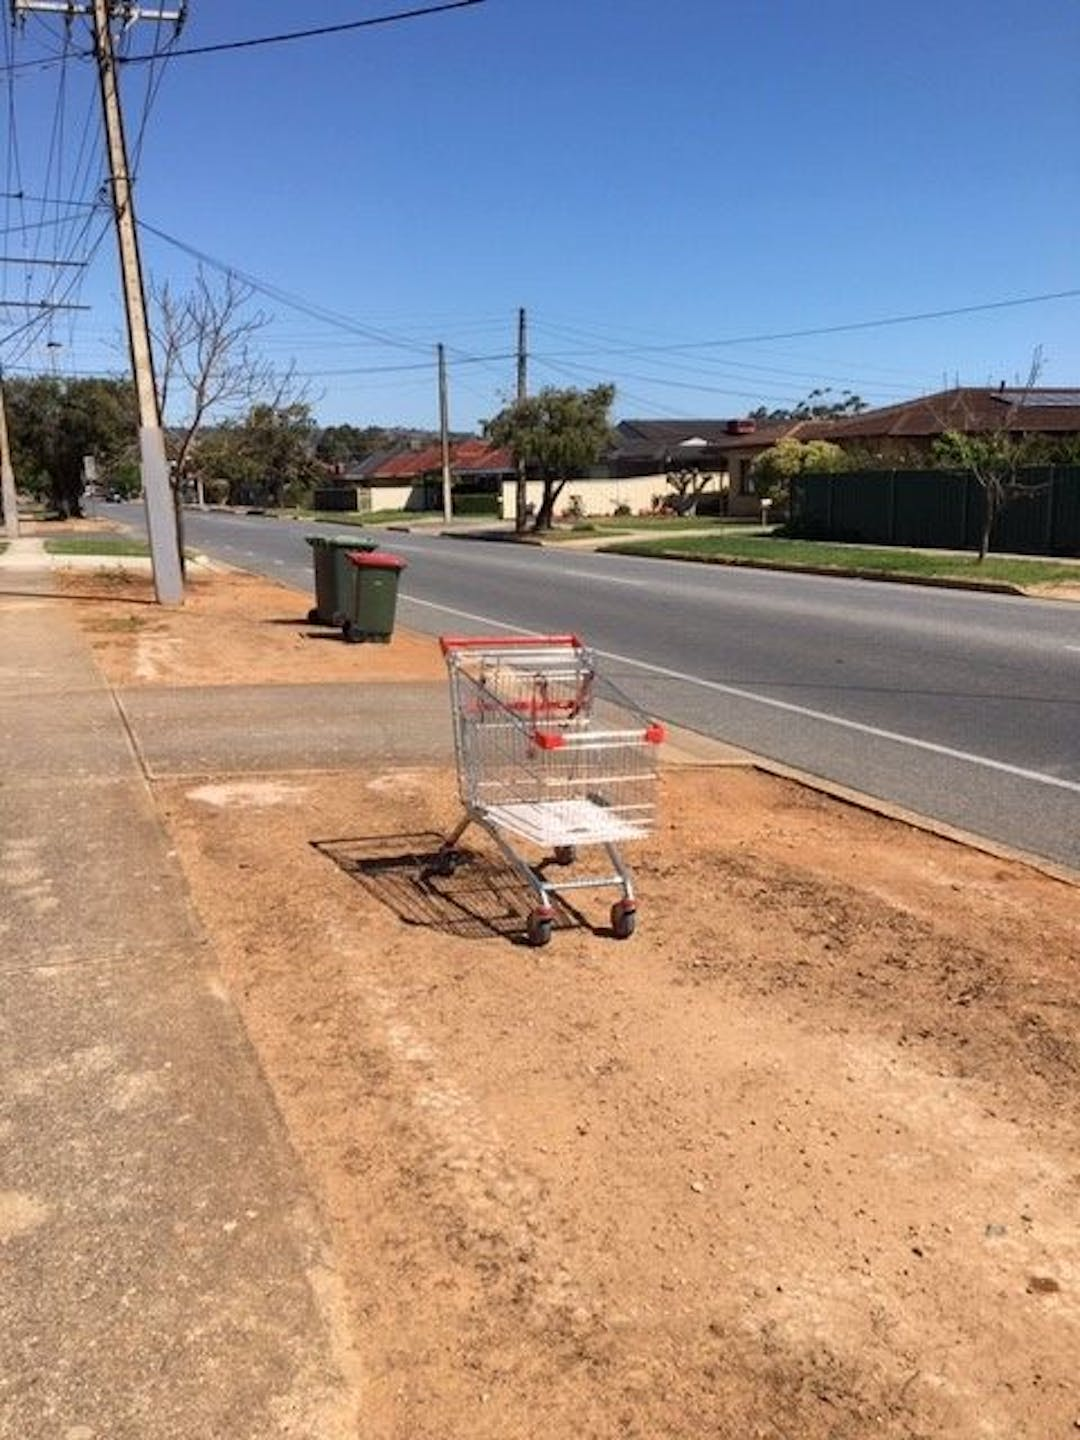 Photo of a shopping trolley sadly abandoned on a street in Marion